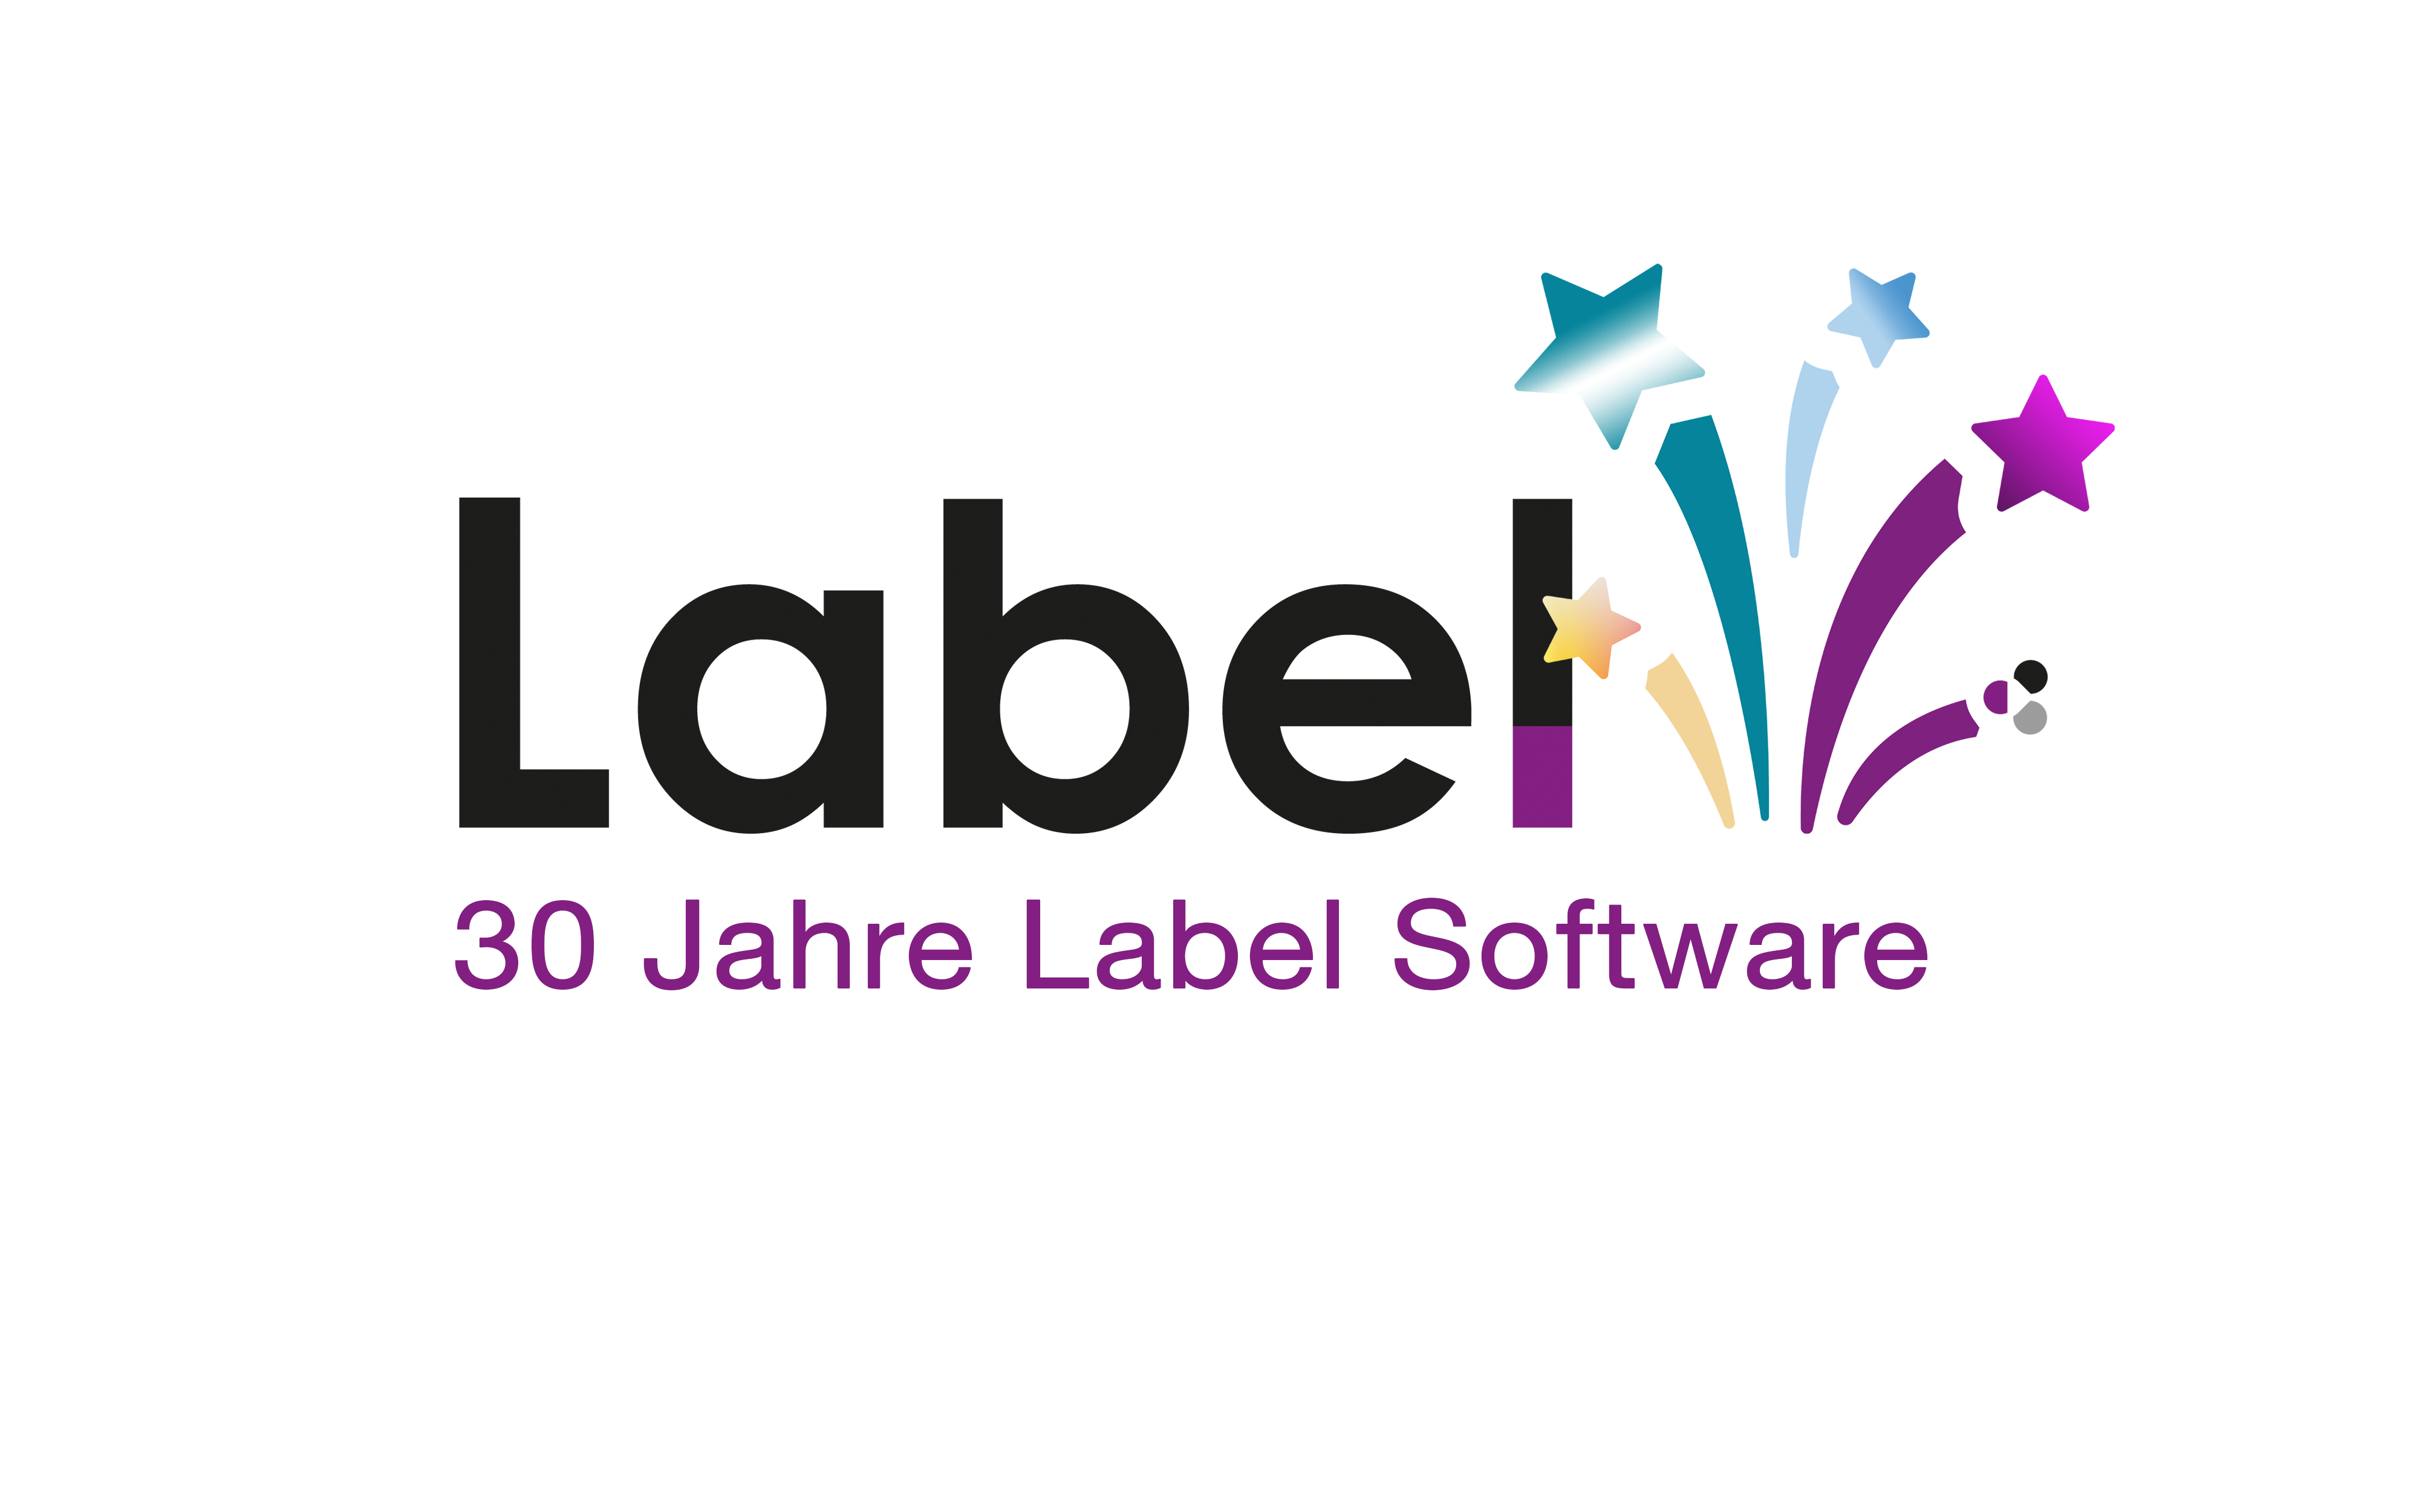 30 Jahre Label Software